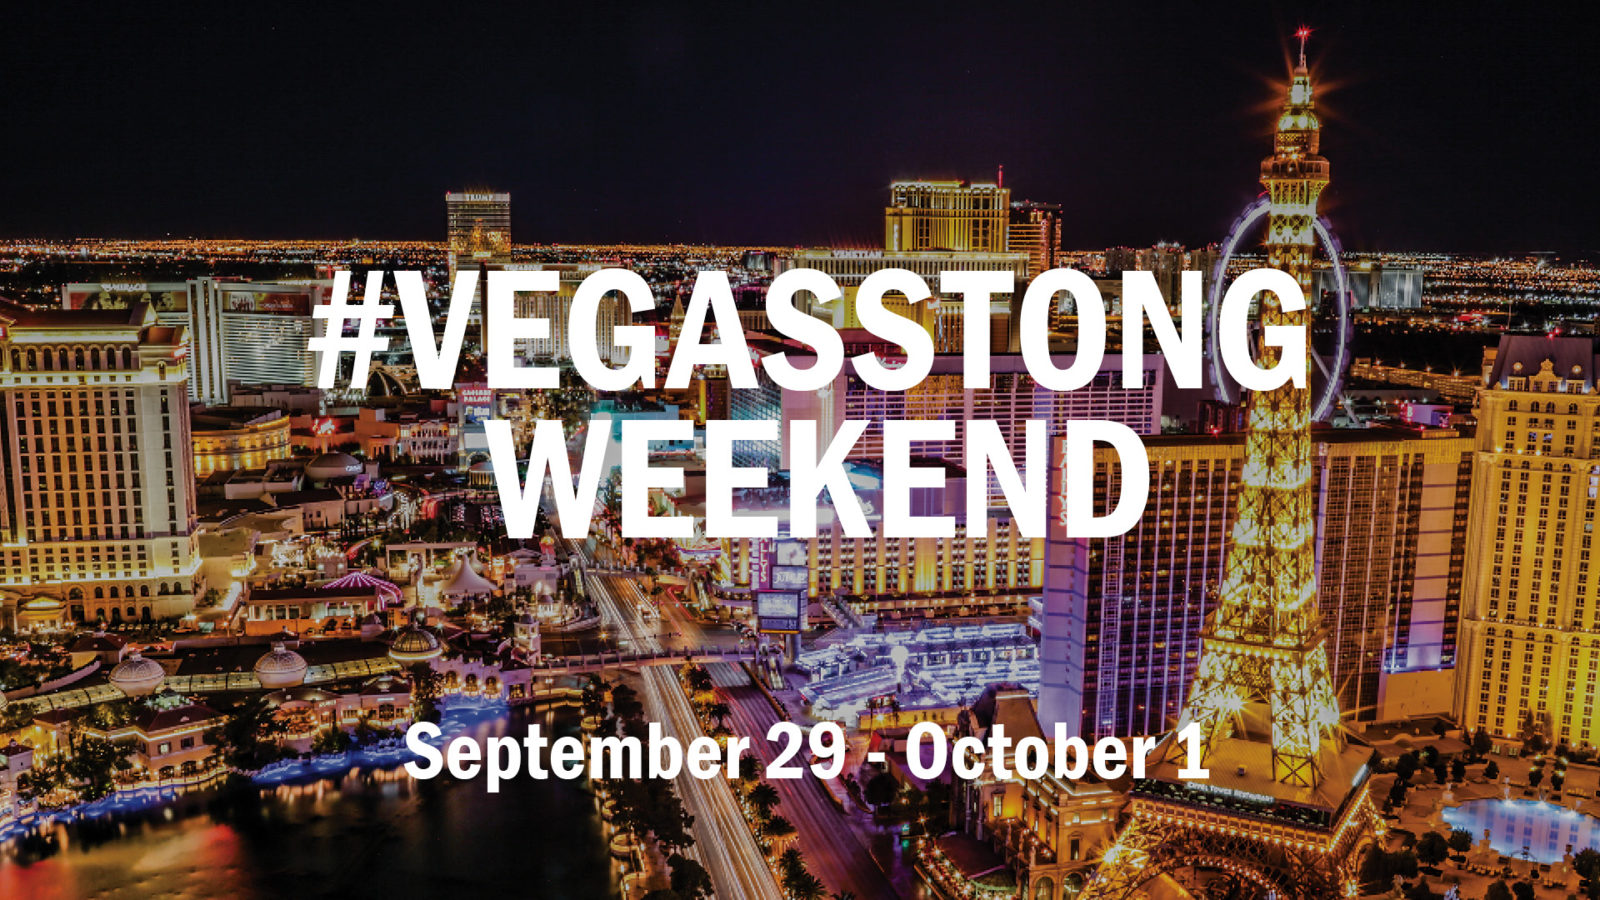 Vegas Strong Weekend